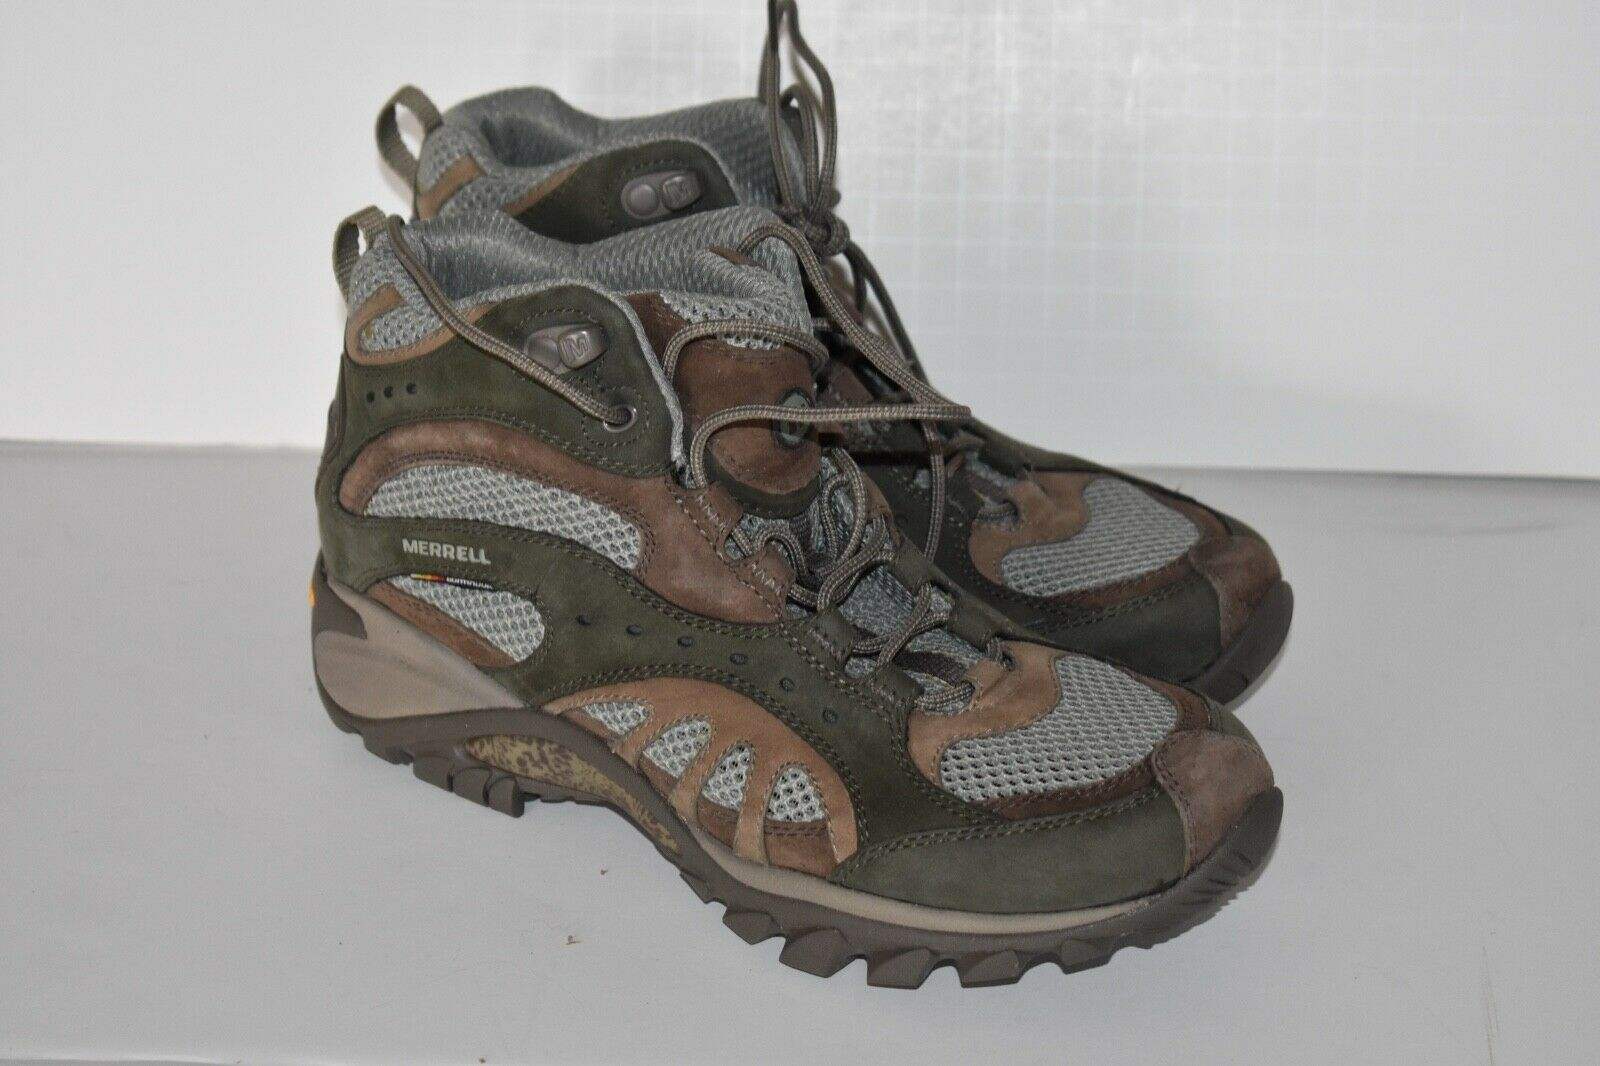 Merrell 16984 Mermaid Vent Mid Seagrass Women Hiking Boots Size 7